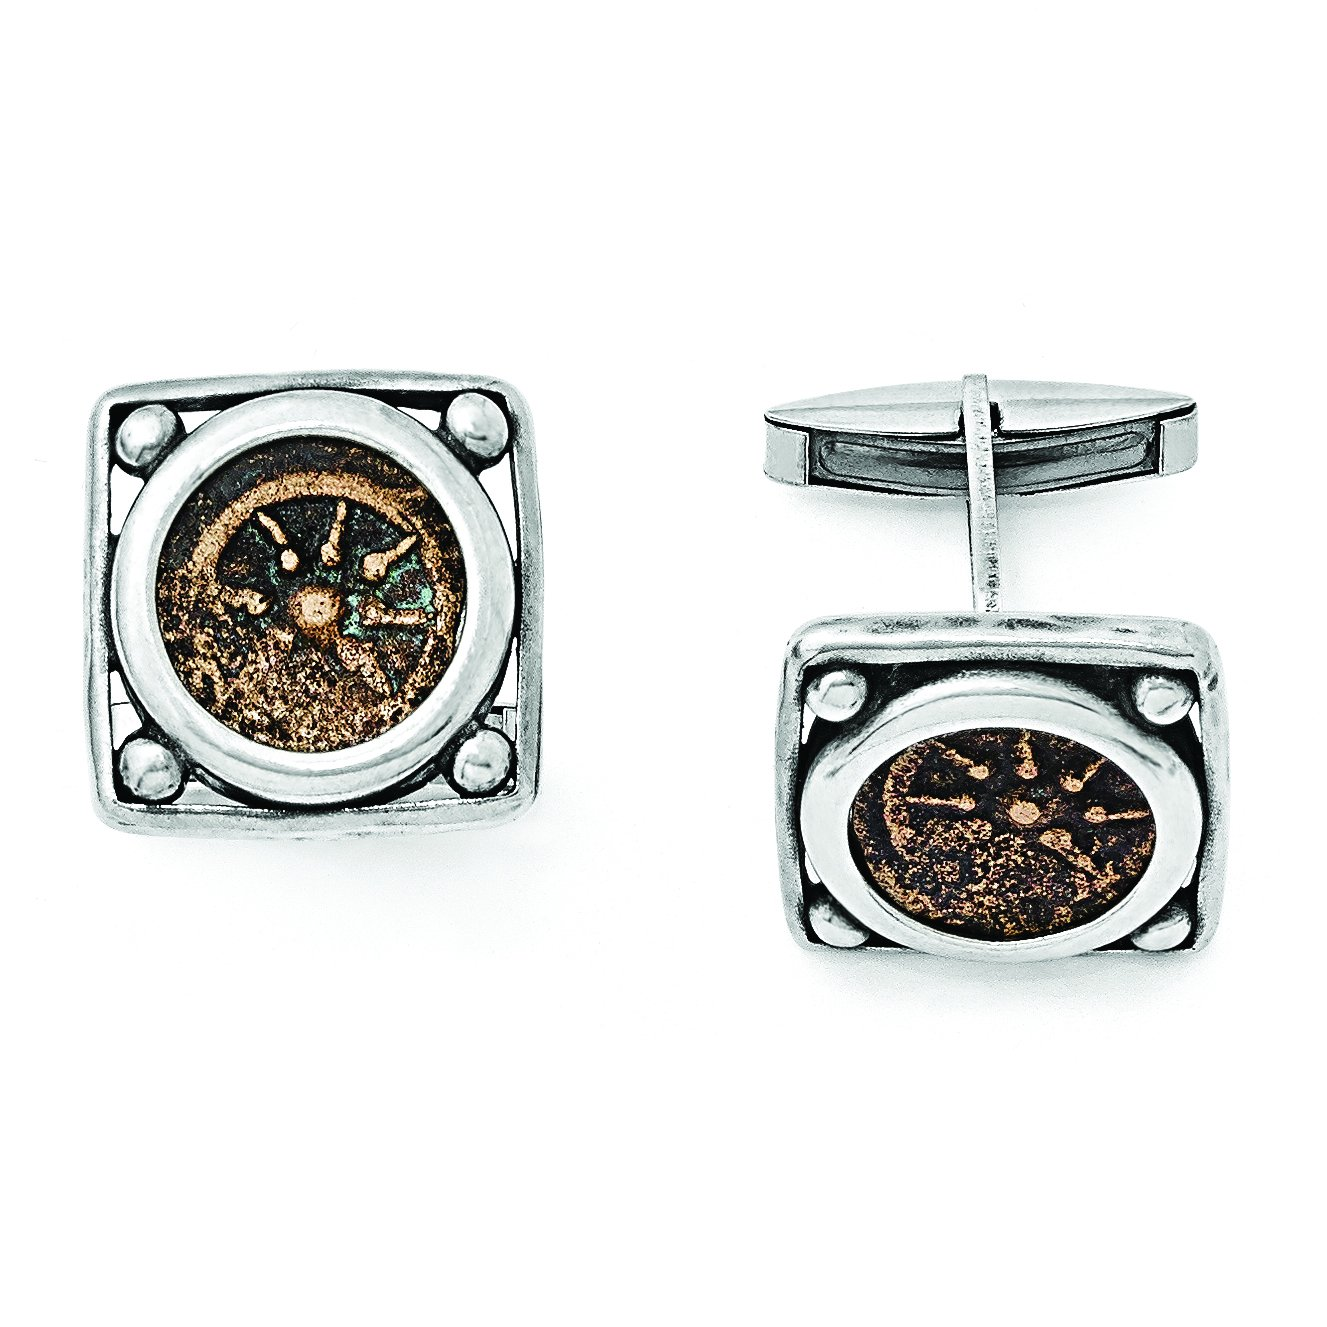 ICE CARATS 925 Sterling Silver Bronze Widows Mite Coin Cuff Links Mens Cufflinks Man Link Fine Jewelry Dad Mens Gift Set